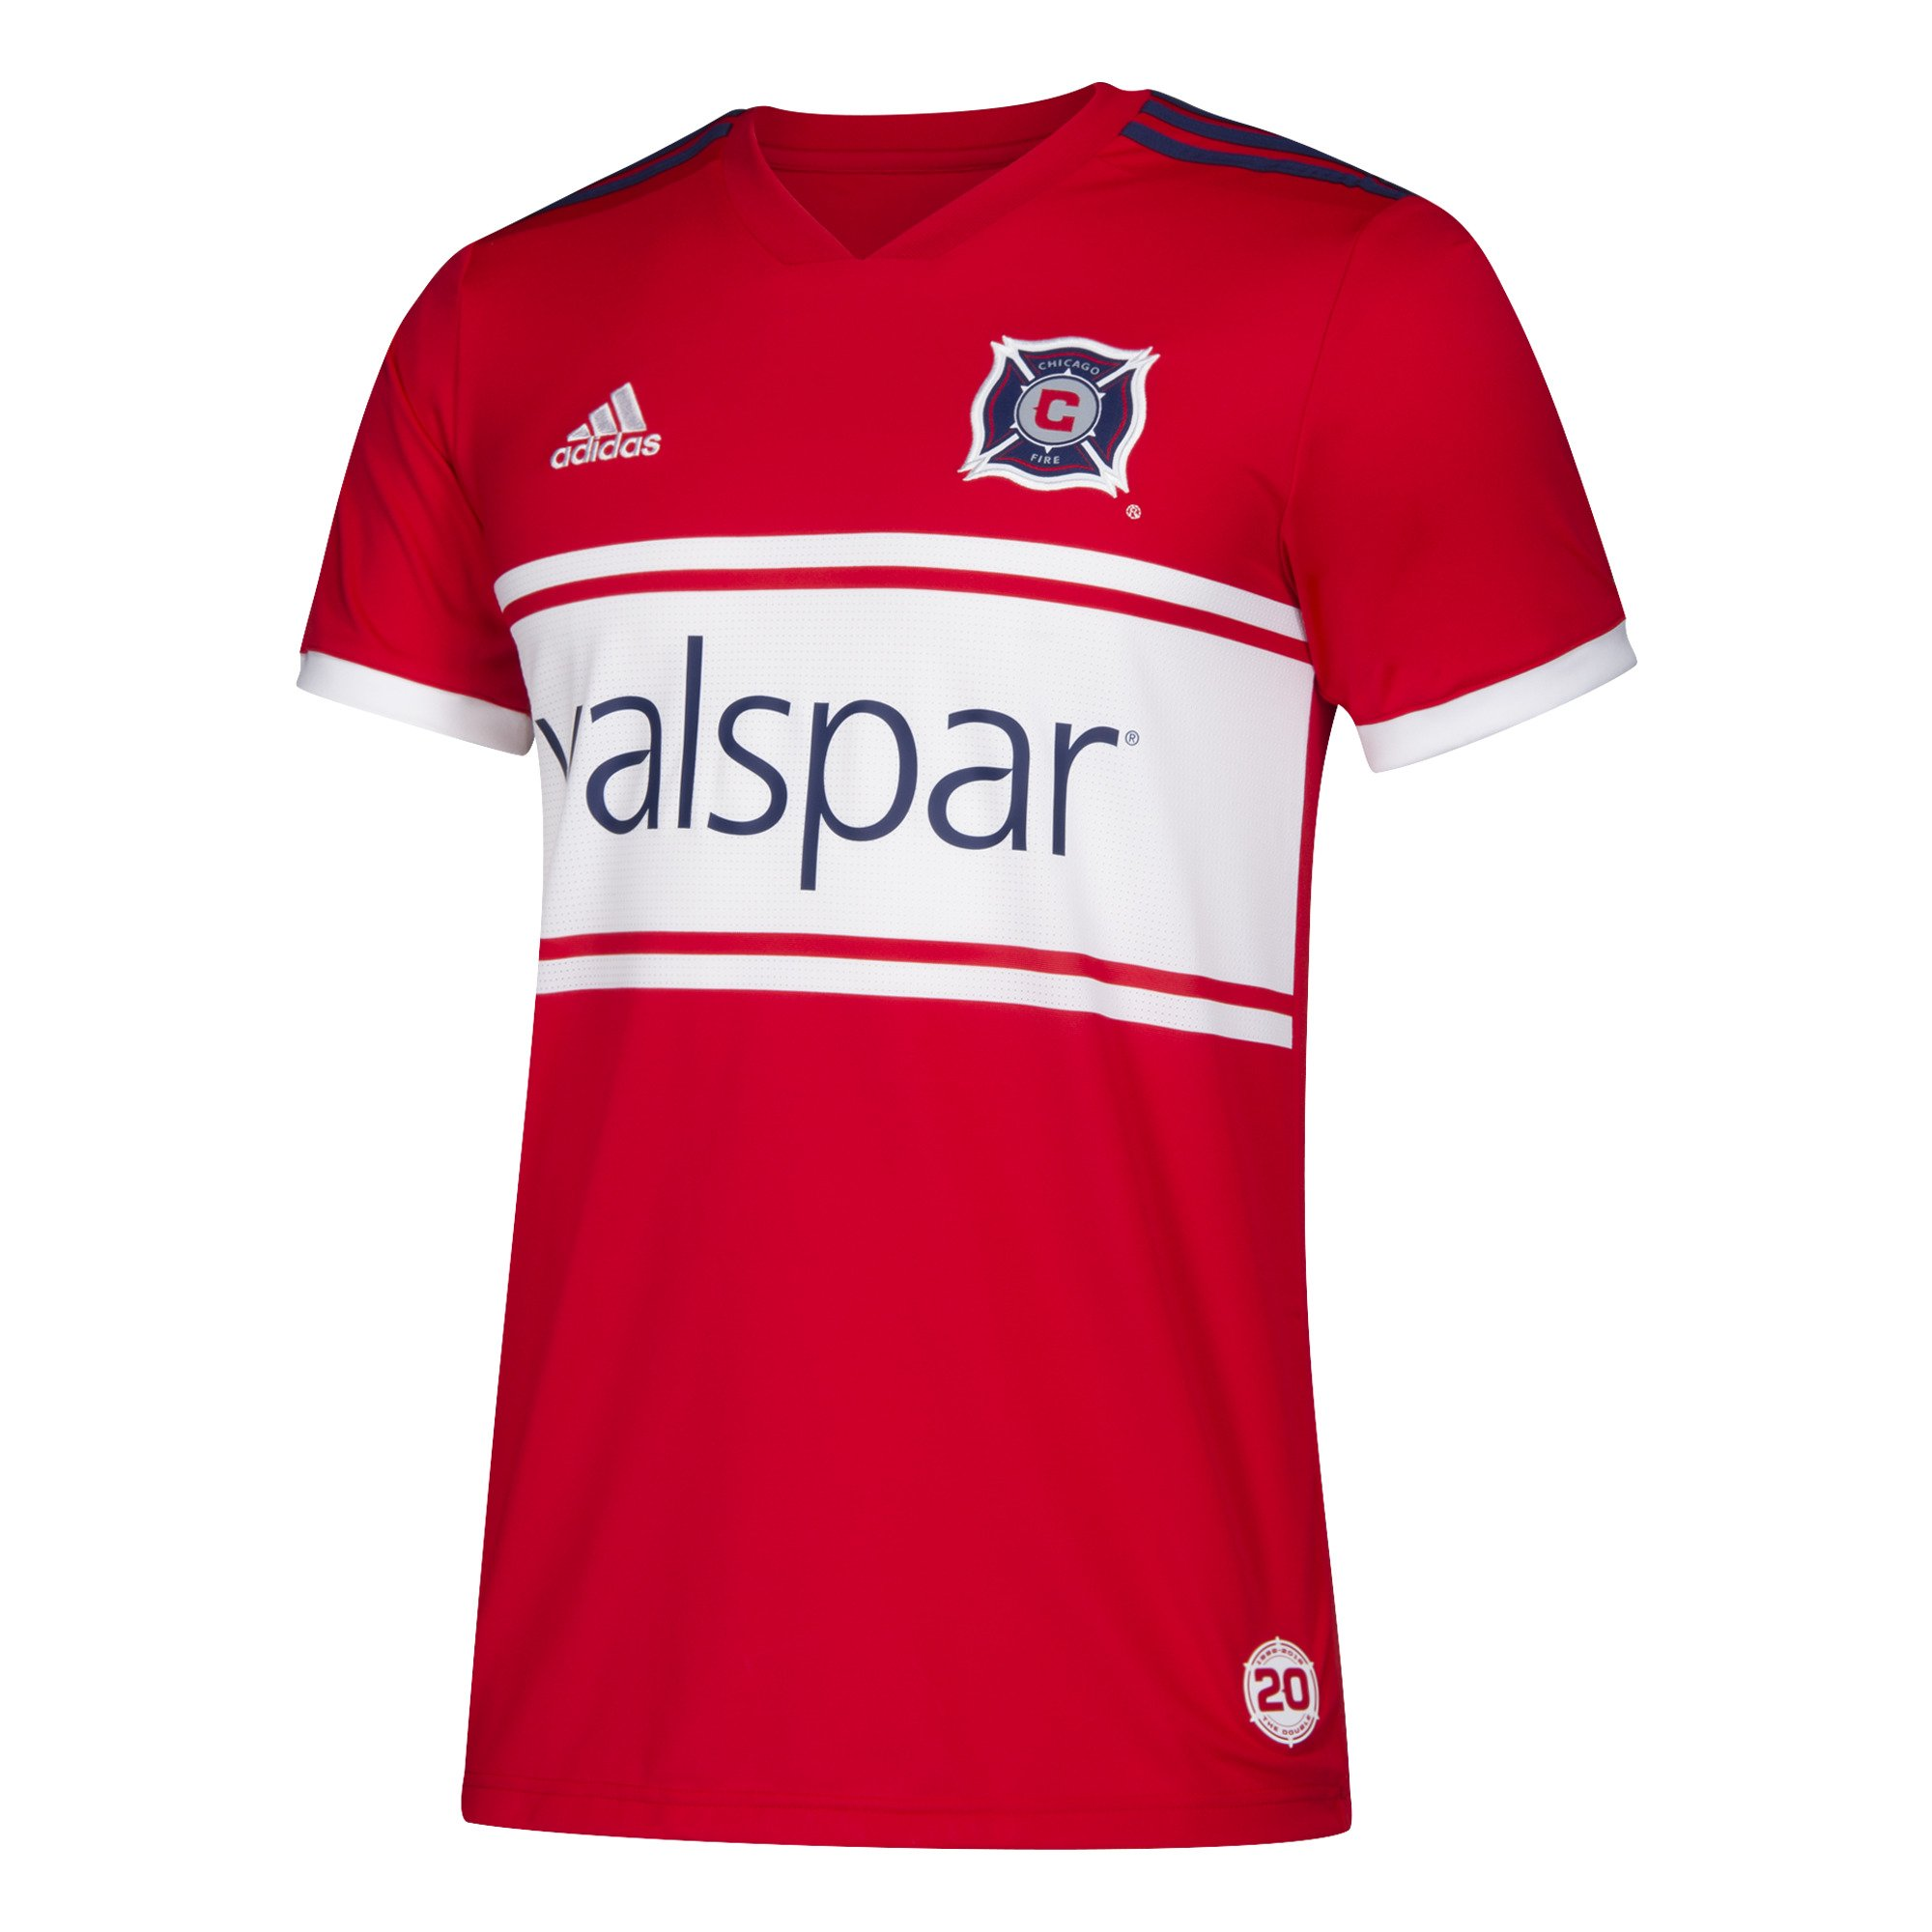 adidas MLS Chicago Fire 7417AFW9AZNCFI Men's Replica Jersey, Medium, Scarlet